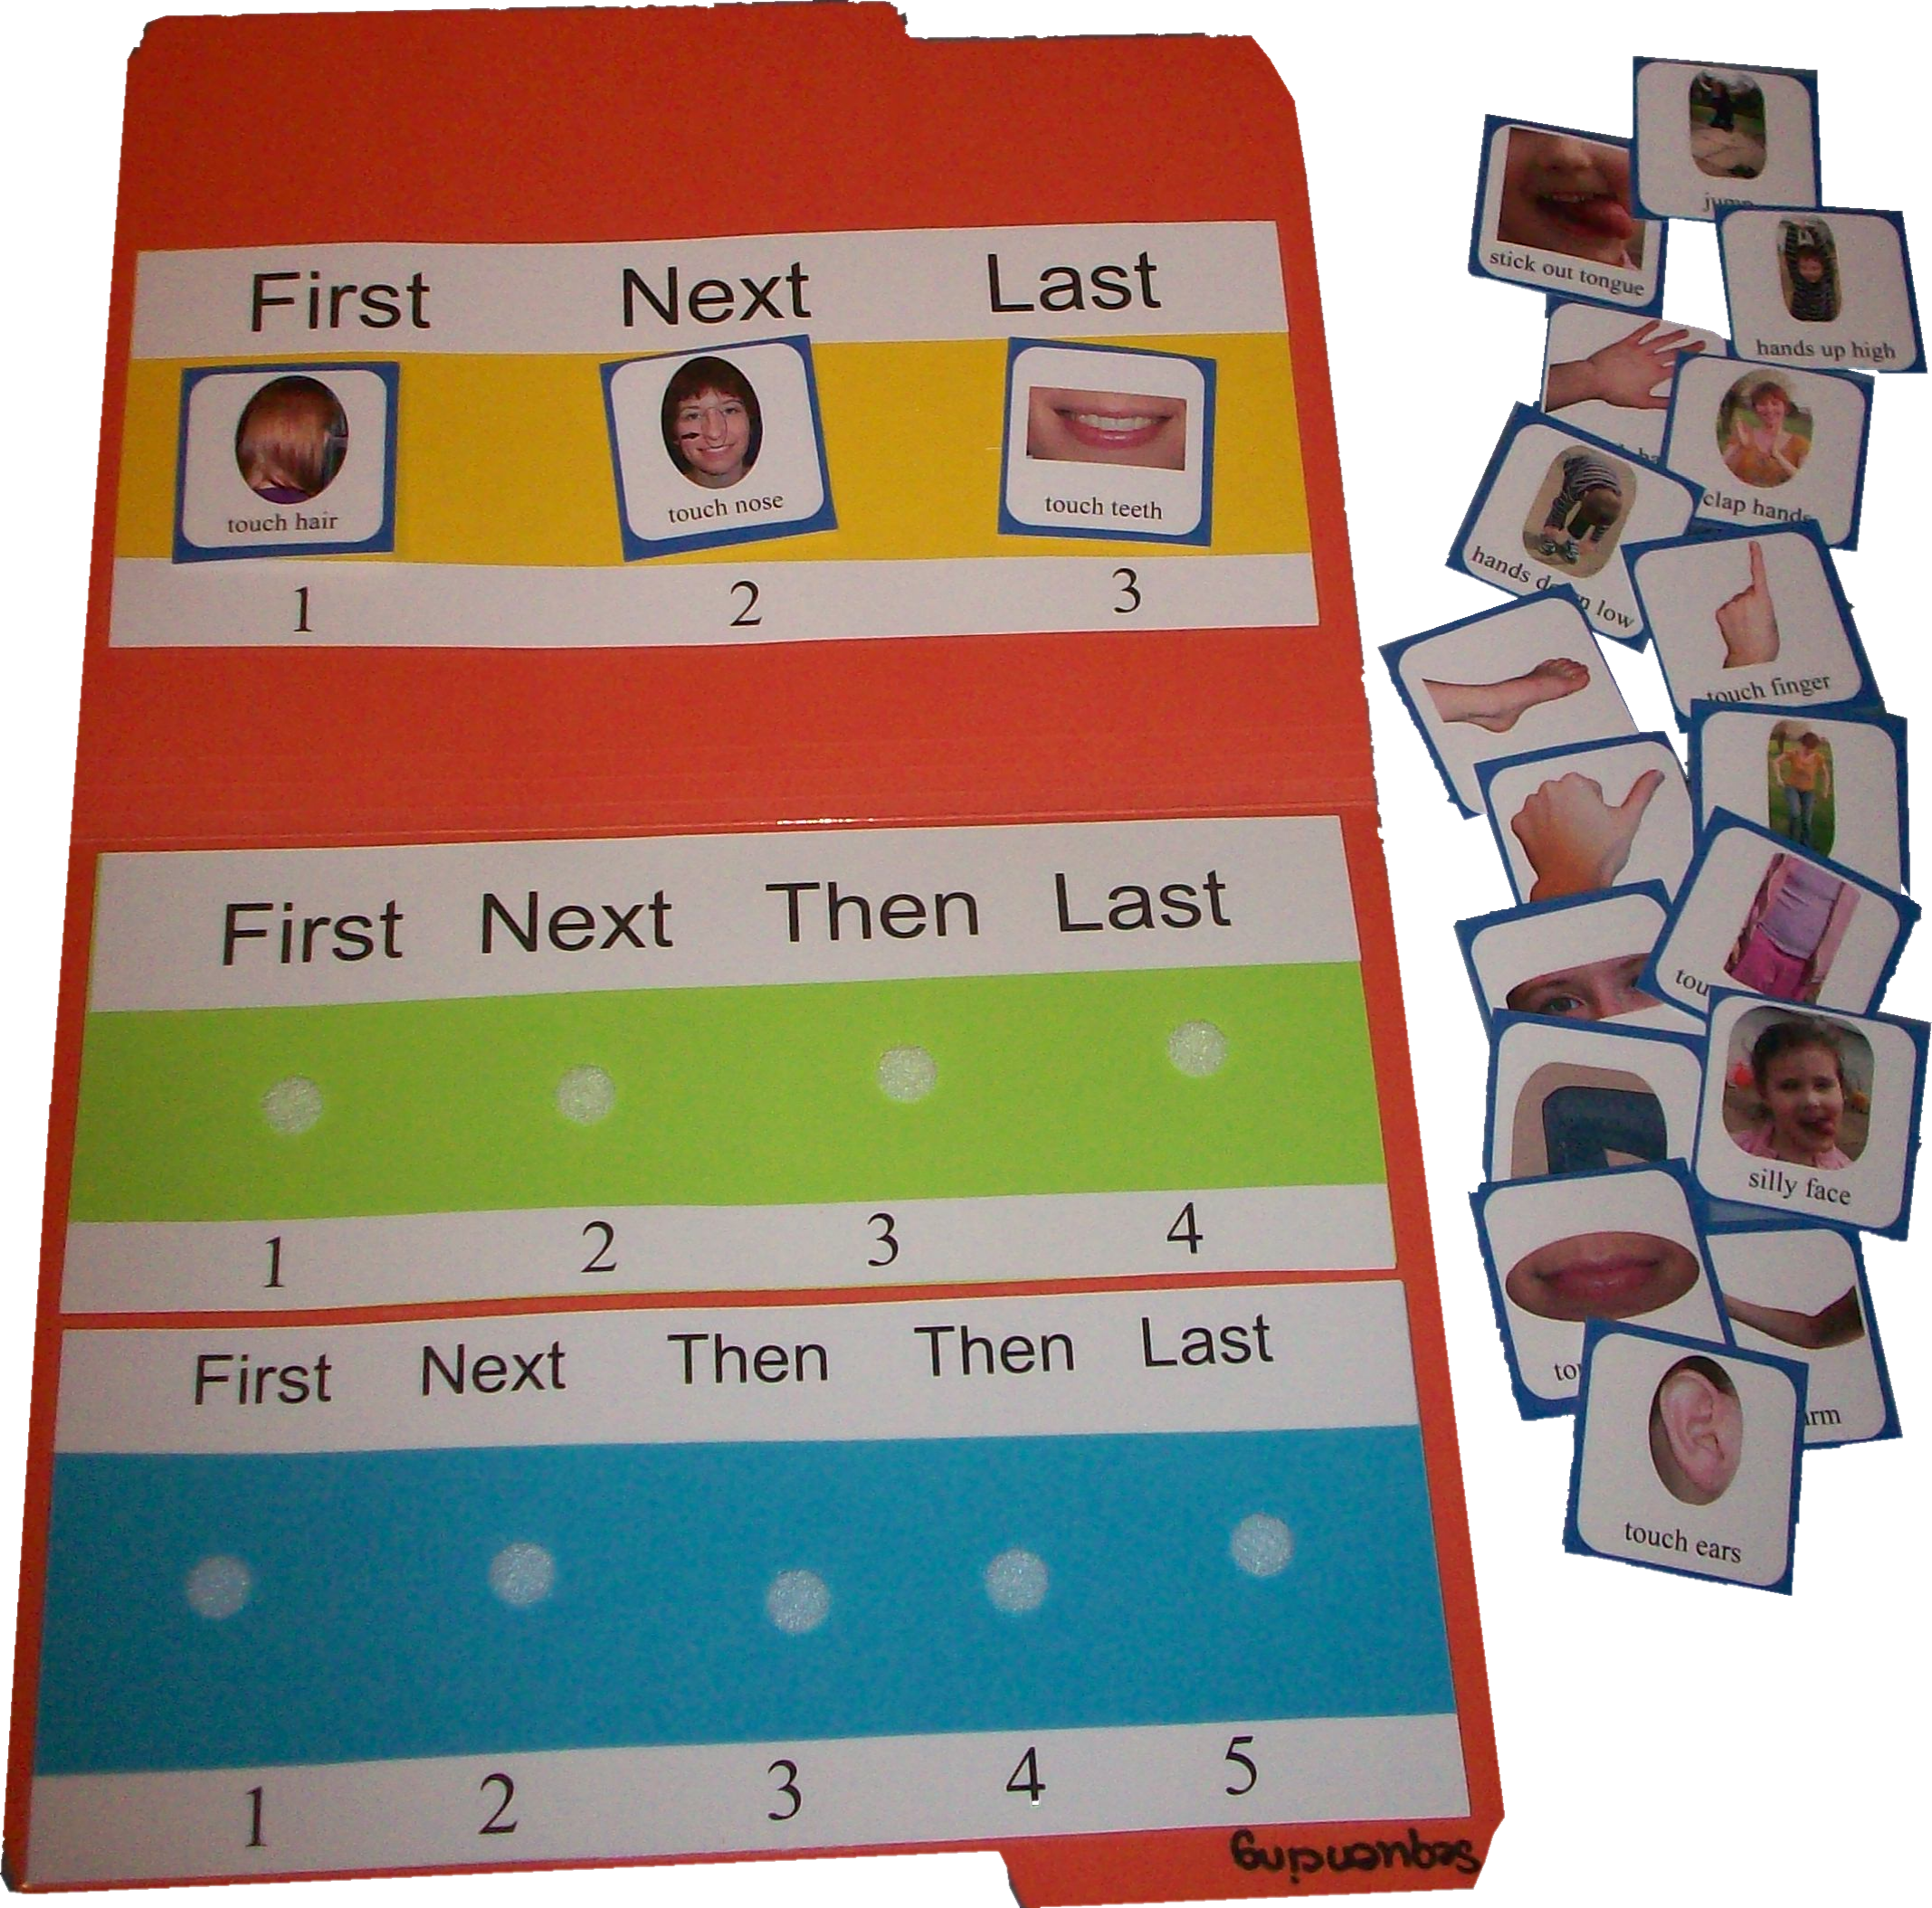 Following Directions Card Set Following Directions